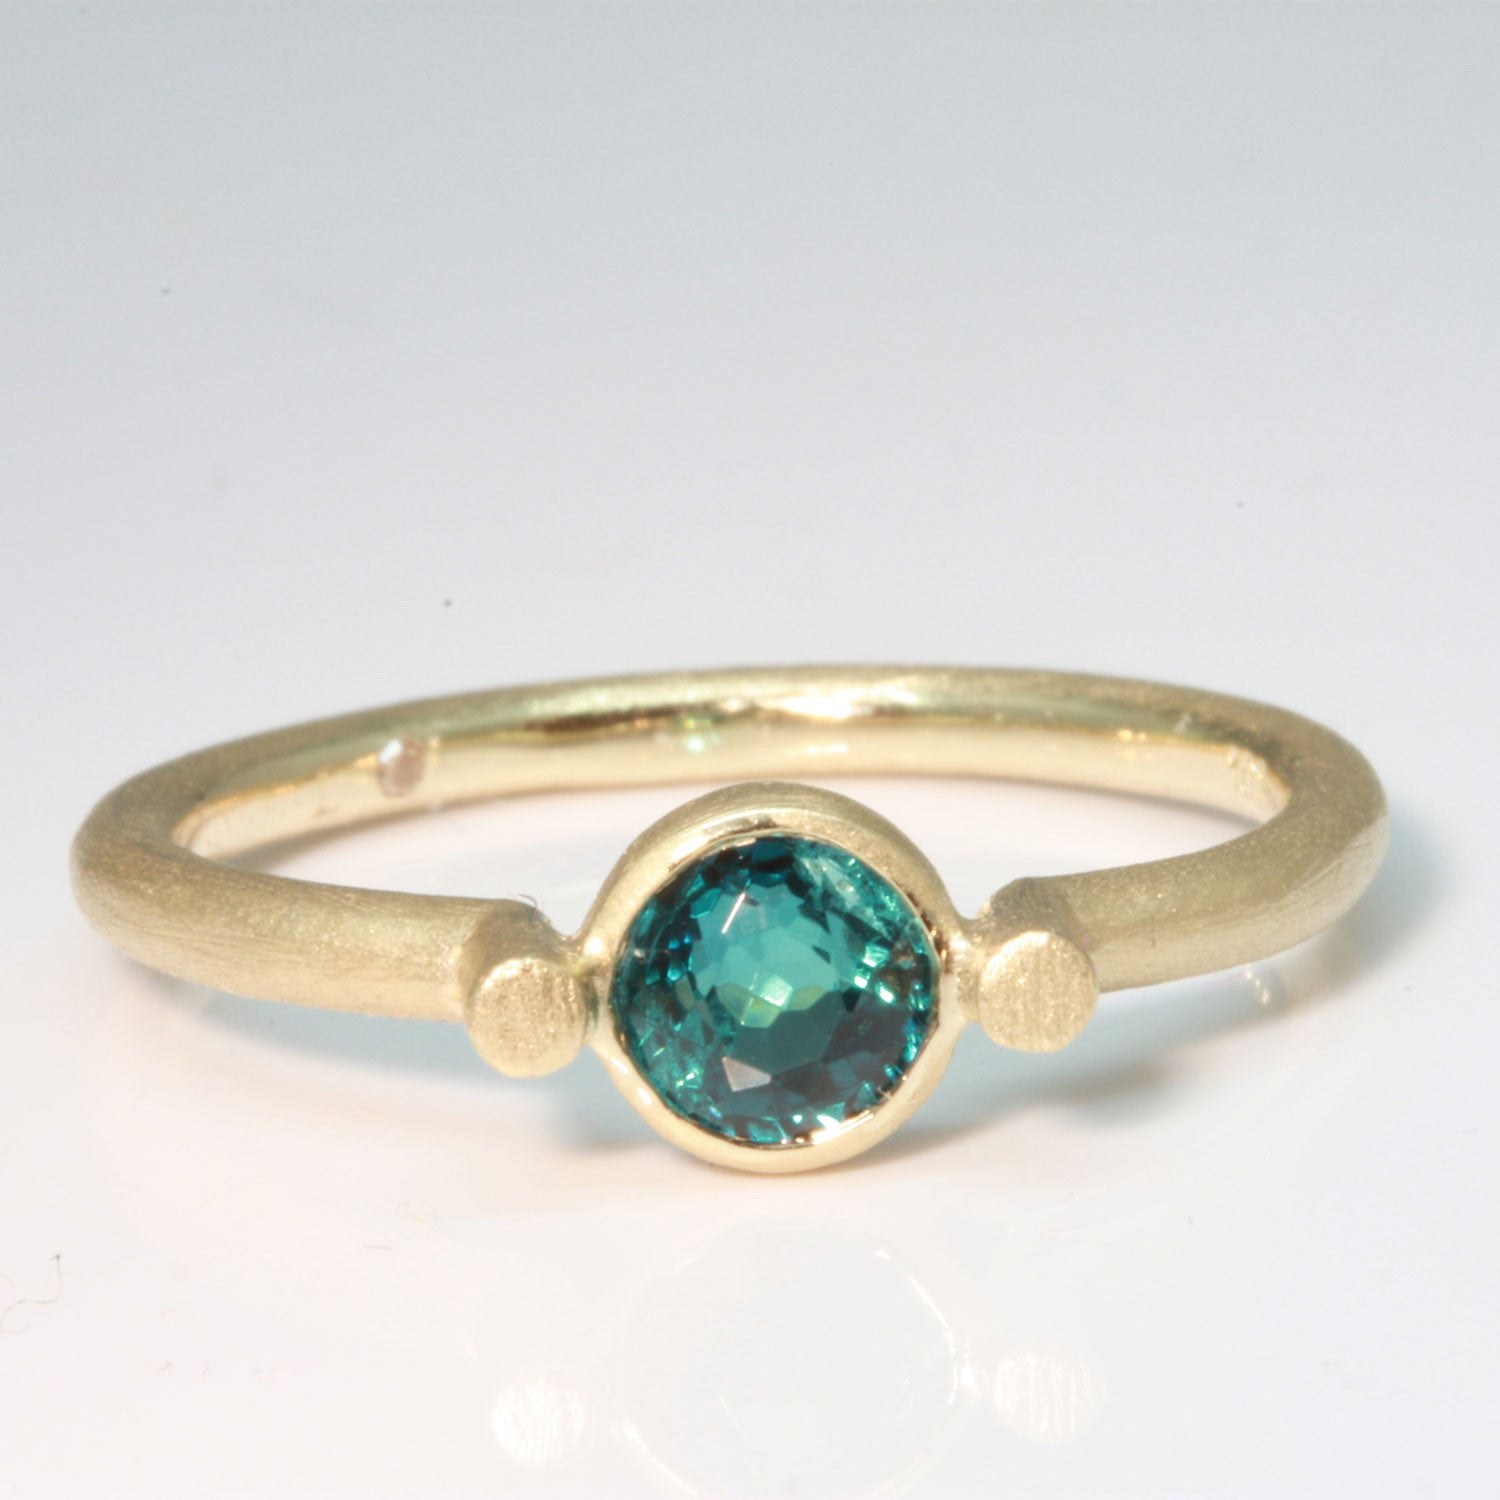 Bezel Set Blue Tourmaline 10k Gold Ring